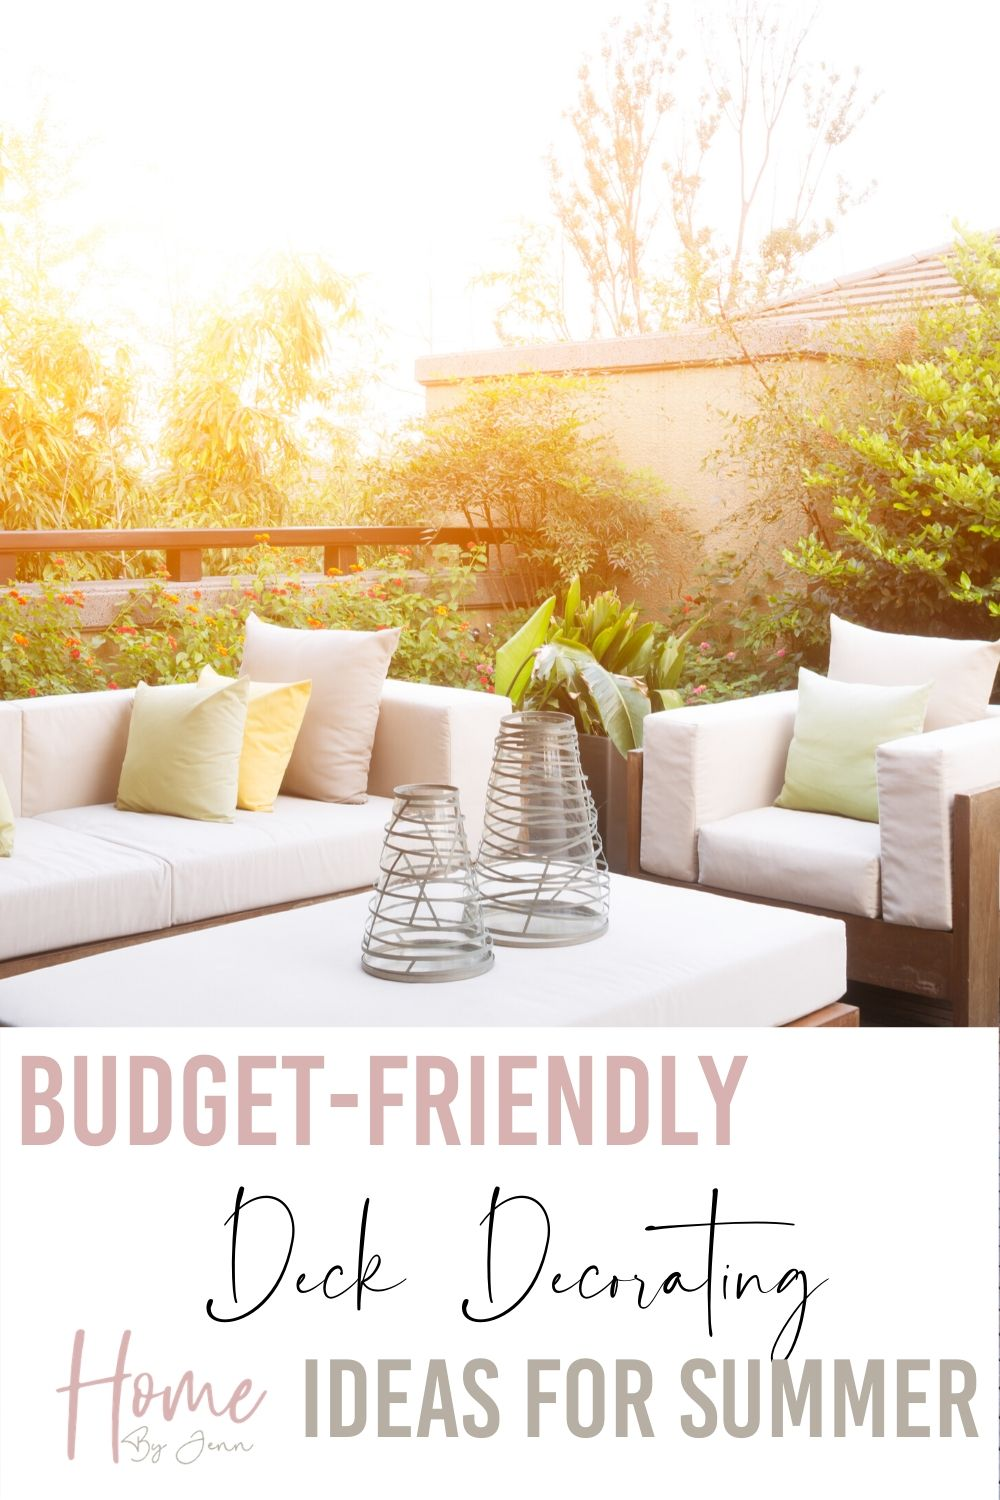 Here are some budget-friendly decorating ideas for your deck during the summer. You don't need to spend a lot to transform your deck for summer. via @homebyjenn